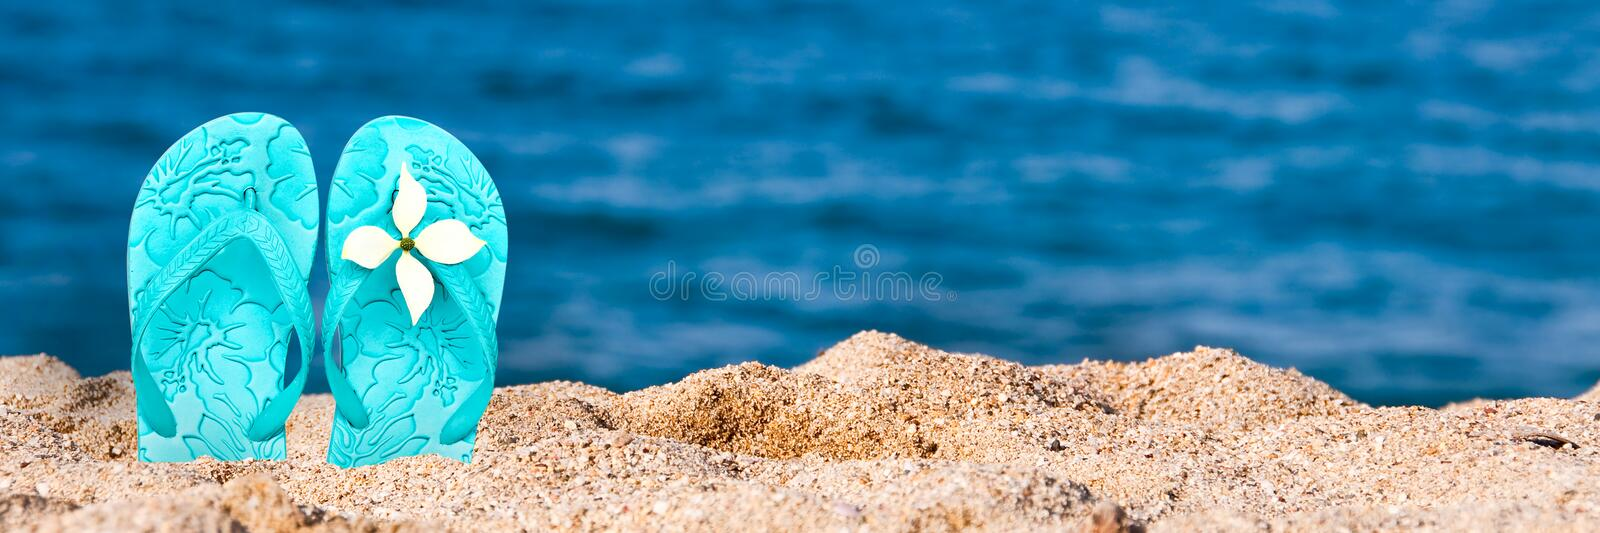 Woman flip flops stuck in the sand on a beach, panoramic summer background royalty free stock image